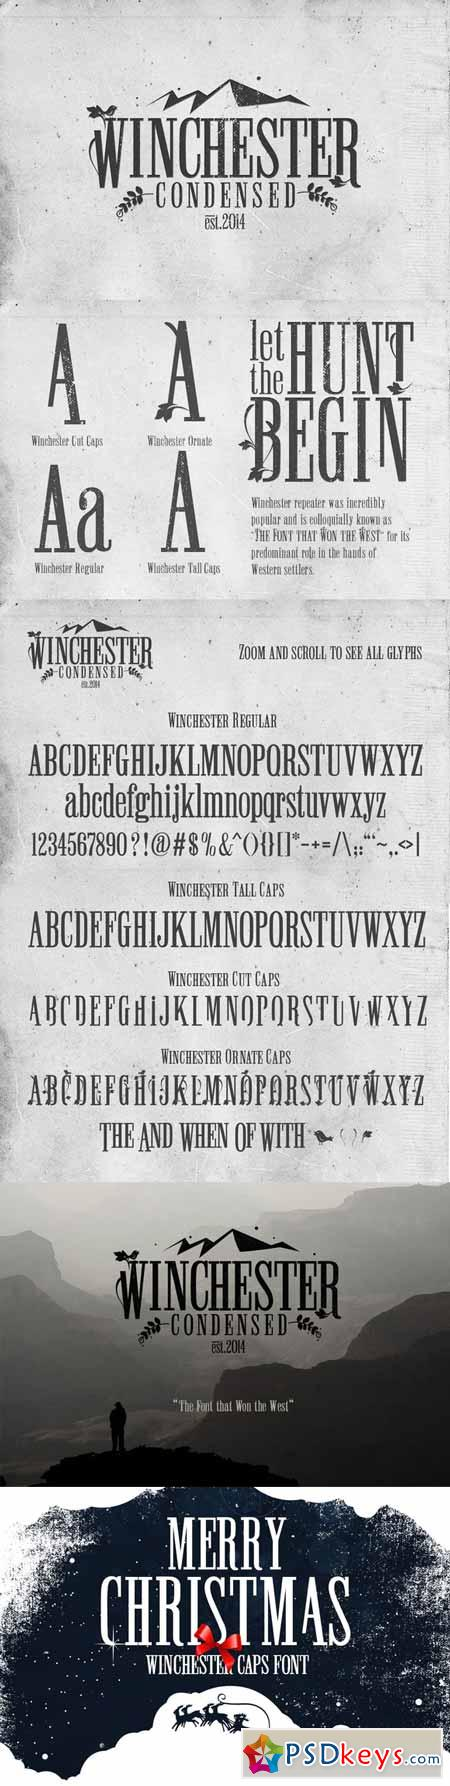 Winchester Condensed Font 104244